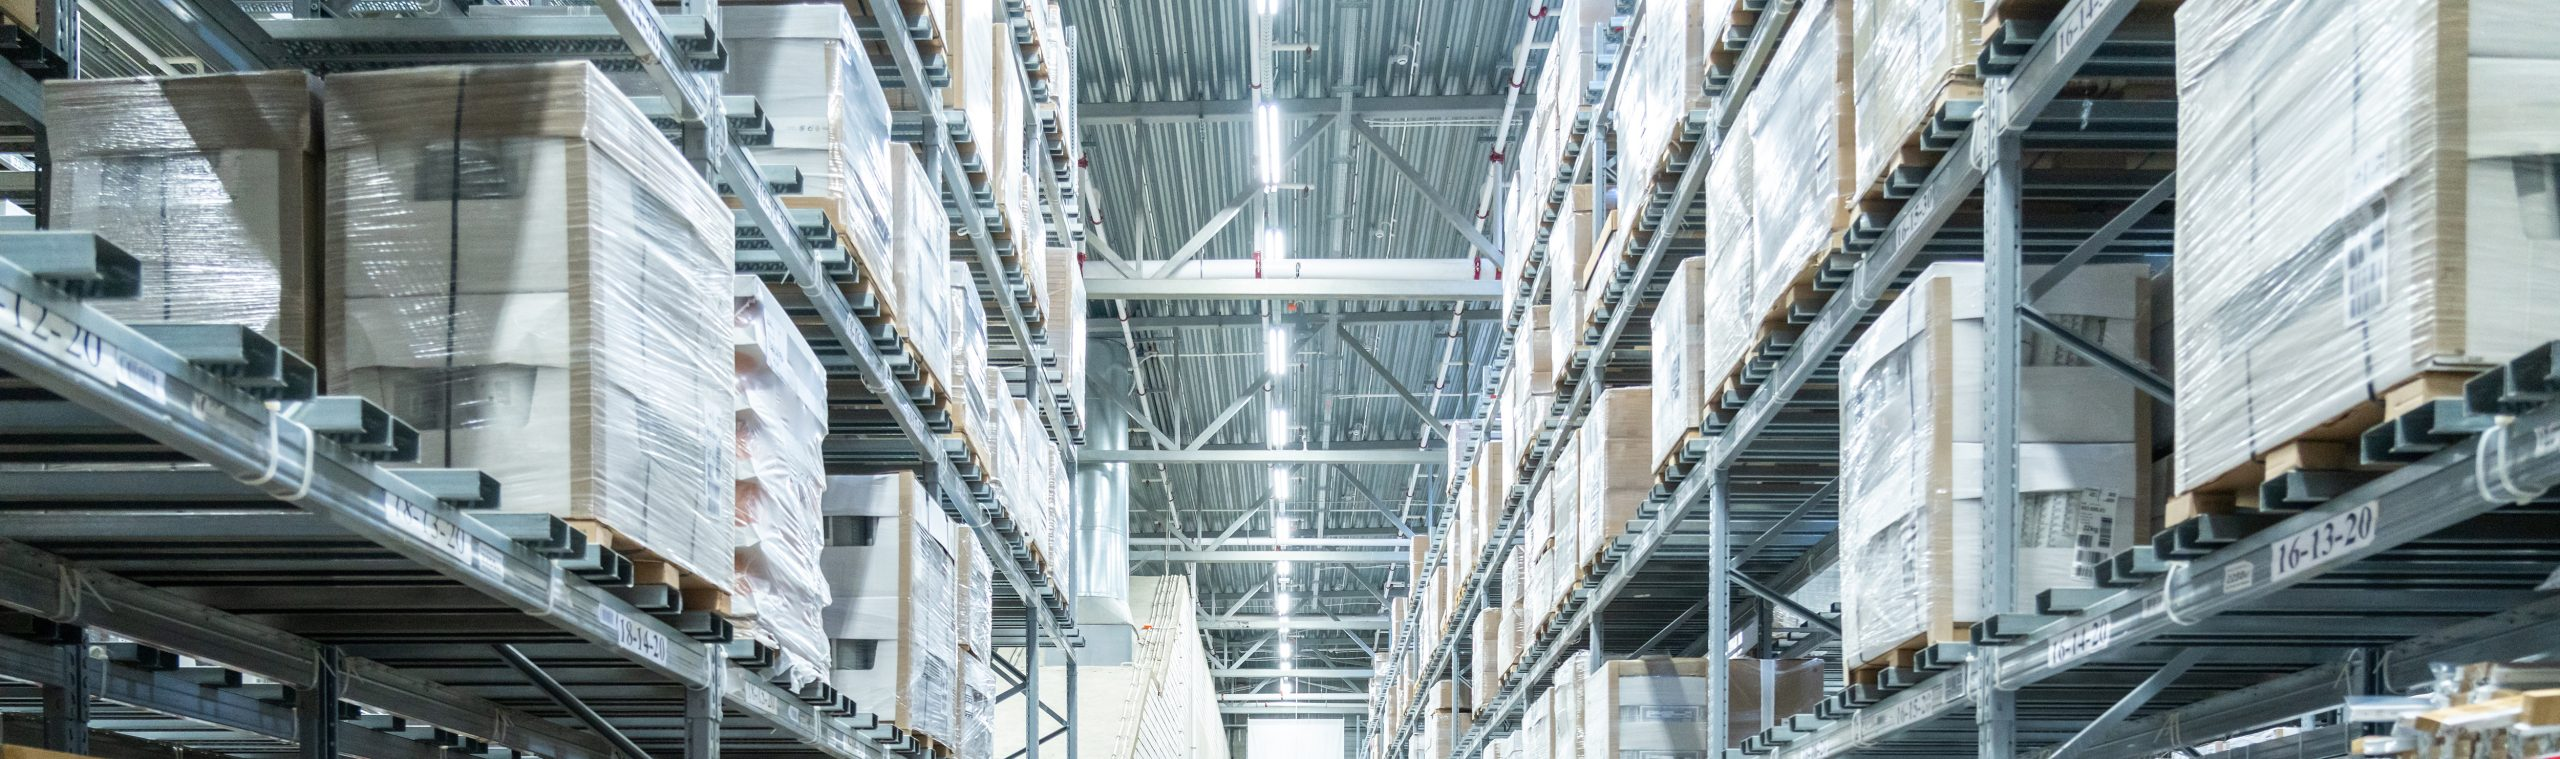 Shelves with boxes in modern warehouse